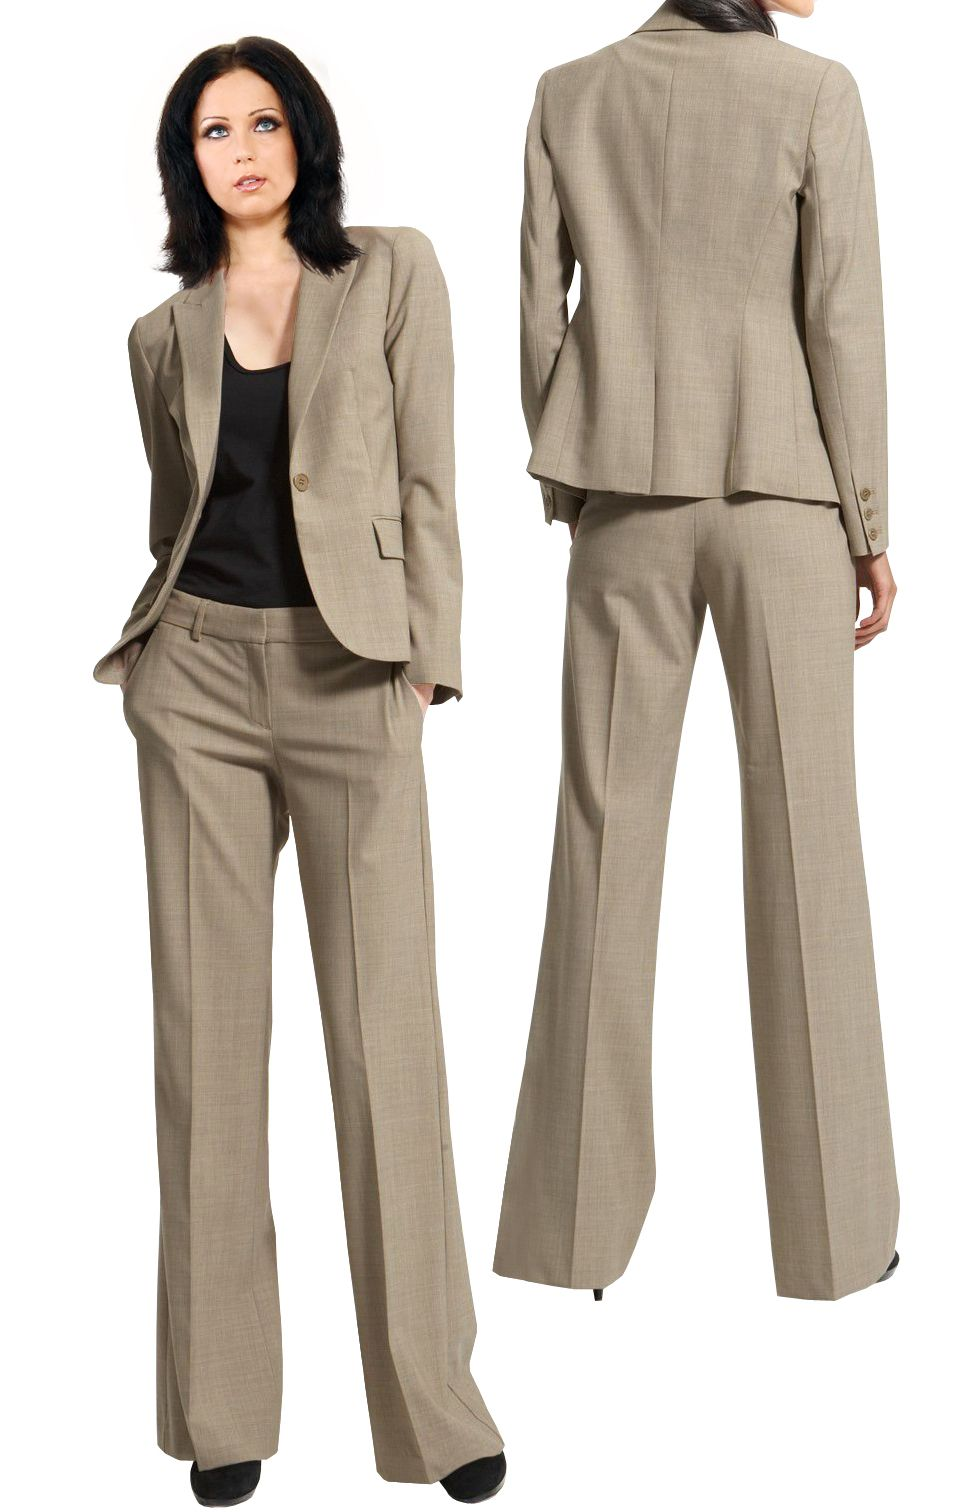 Dress Pant Suits For Women